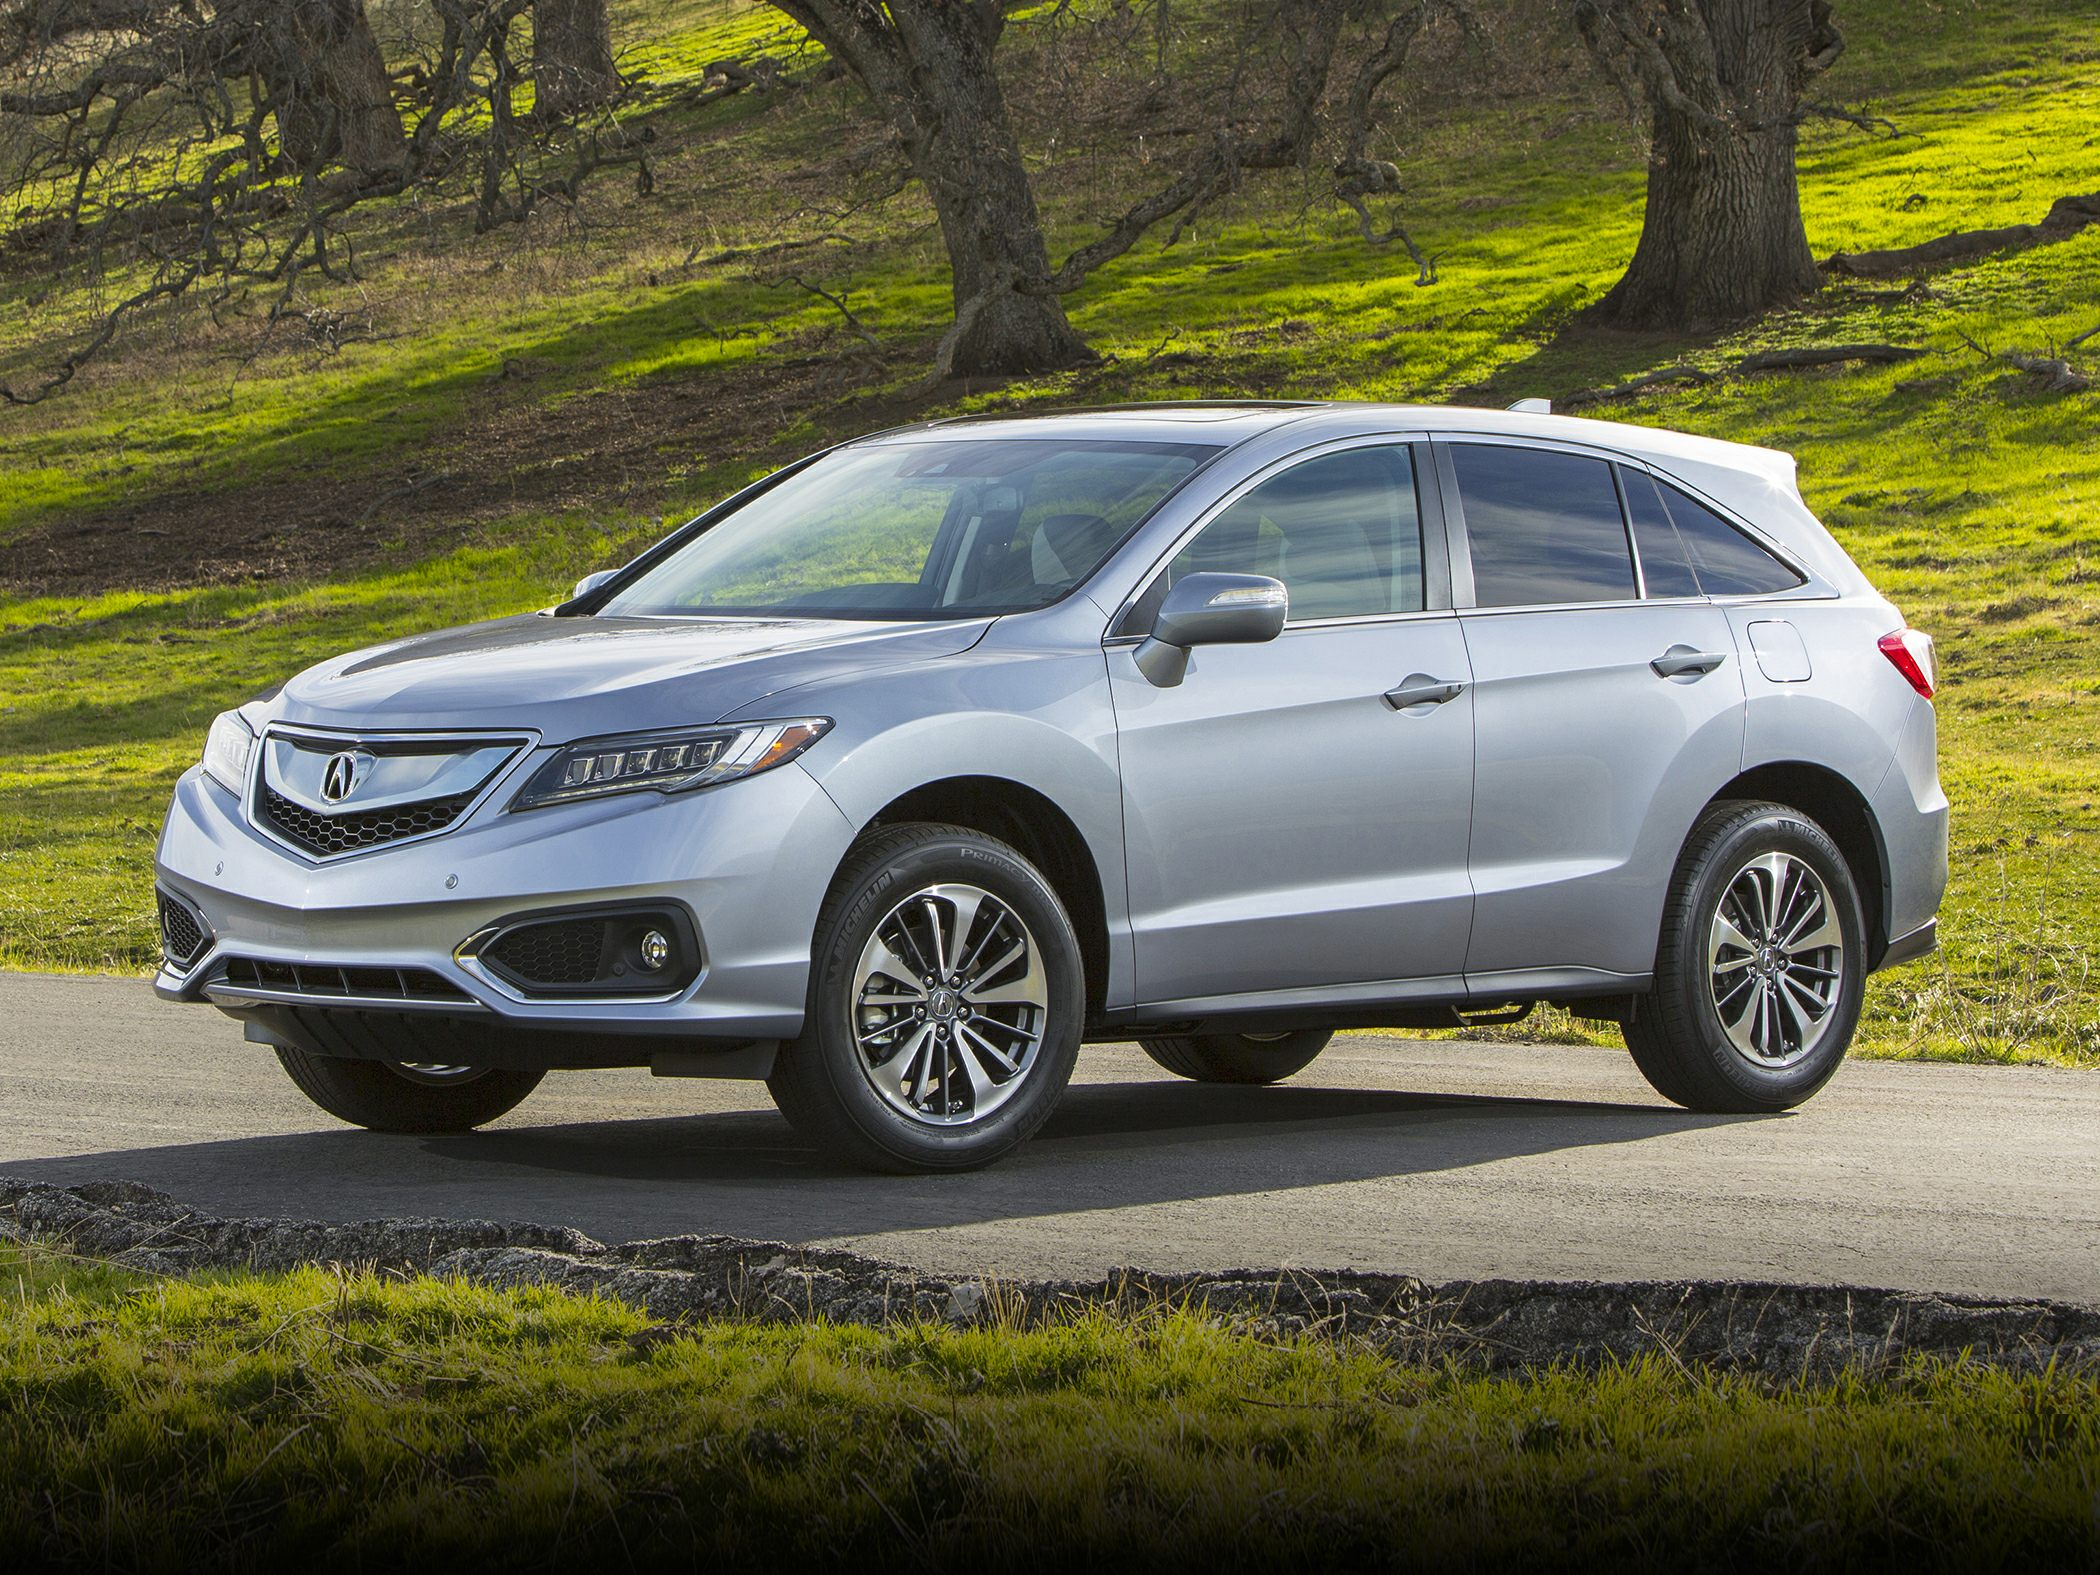 Acura RDX For Sale In Saskatoon Acura Centre Of Saskatoon - 2018 acura rdx rims